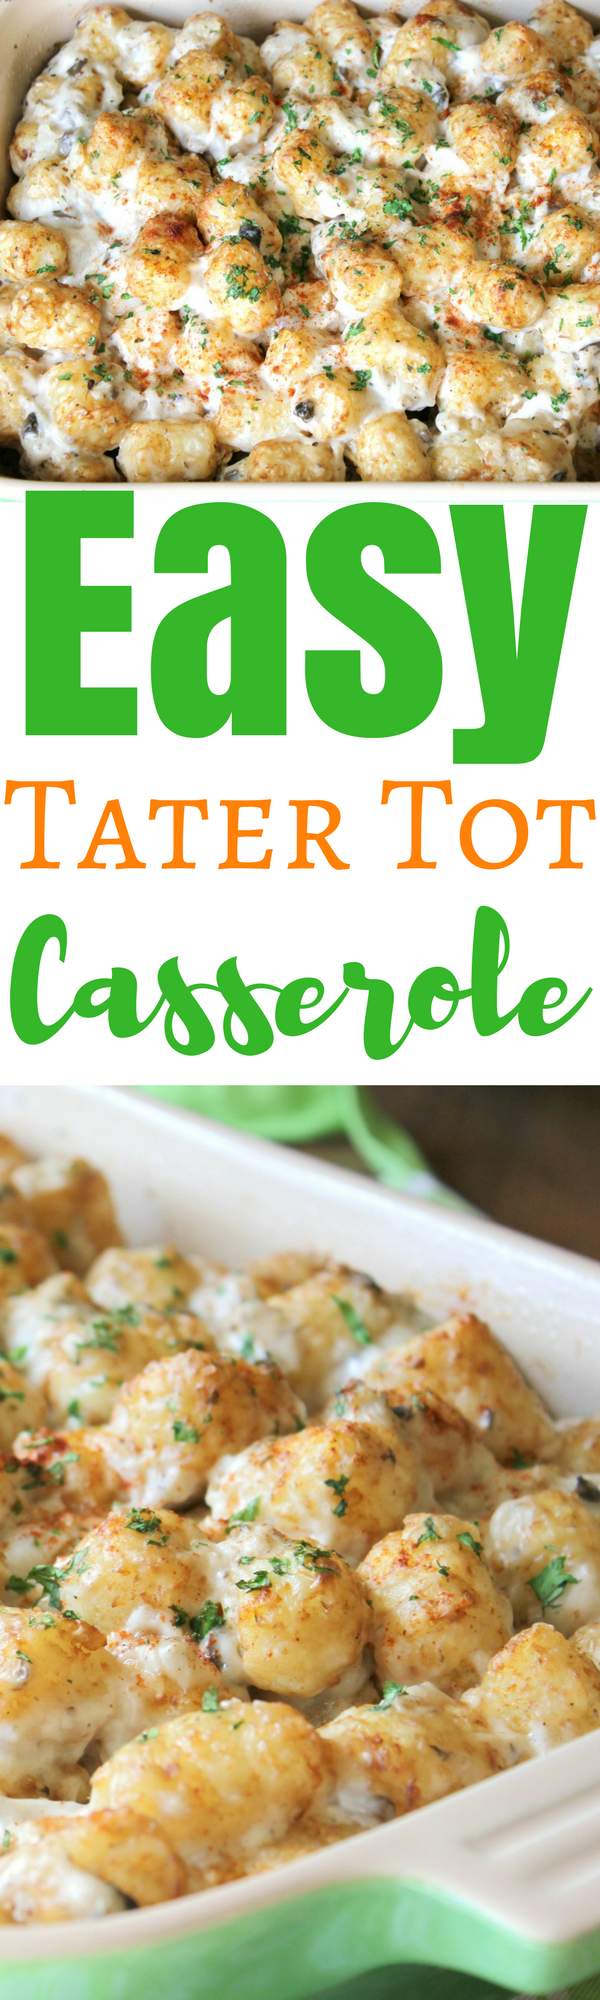 This Easy Tater Tot Casserole recipe is the perfect solution for those busy nights you don't have a lot of time to cook.